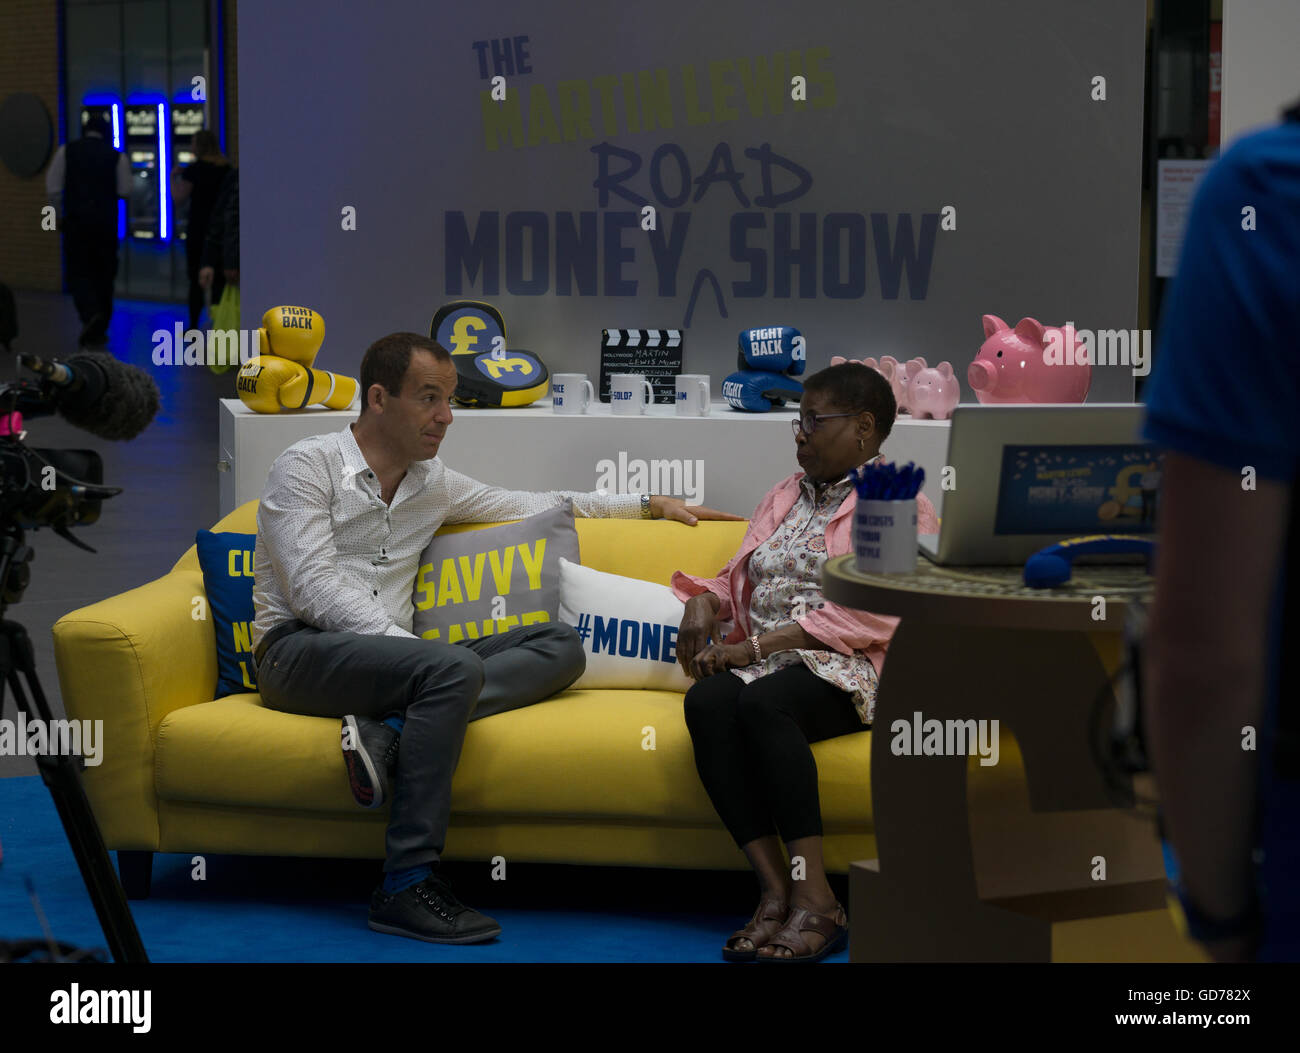 Martin Lewis conducting a live interview on the Money Show film set at Kings Cross St.Pancras Station,London,England Stock Photo